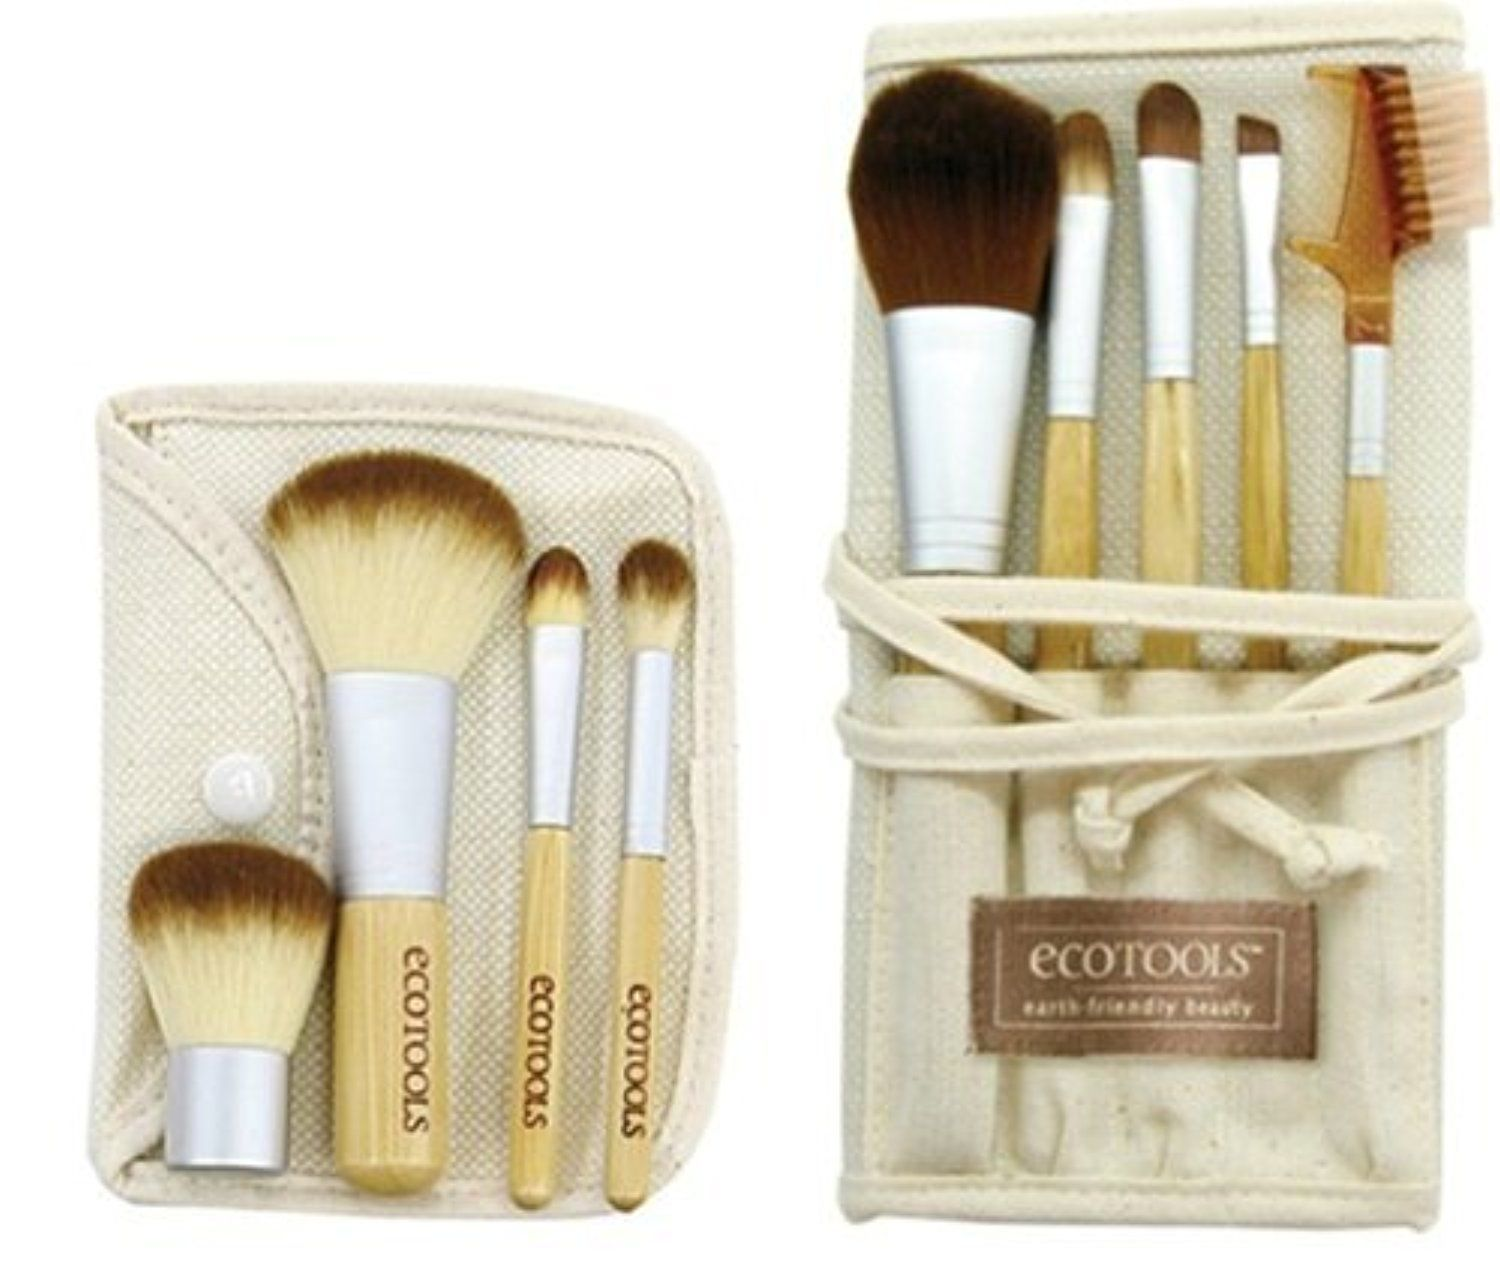 ecotools eye brush set. authentic organic natural ecotools bamboo starter makeup brush set eco tools make up (11 piece ecotools eye